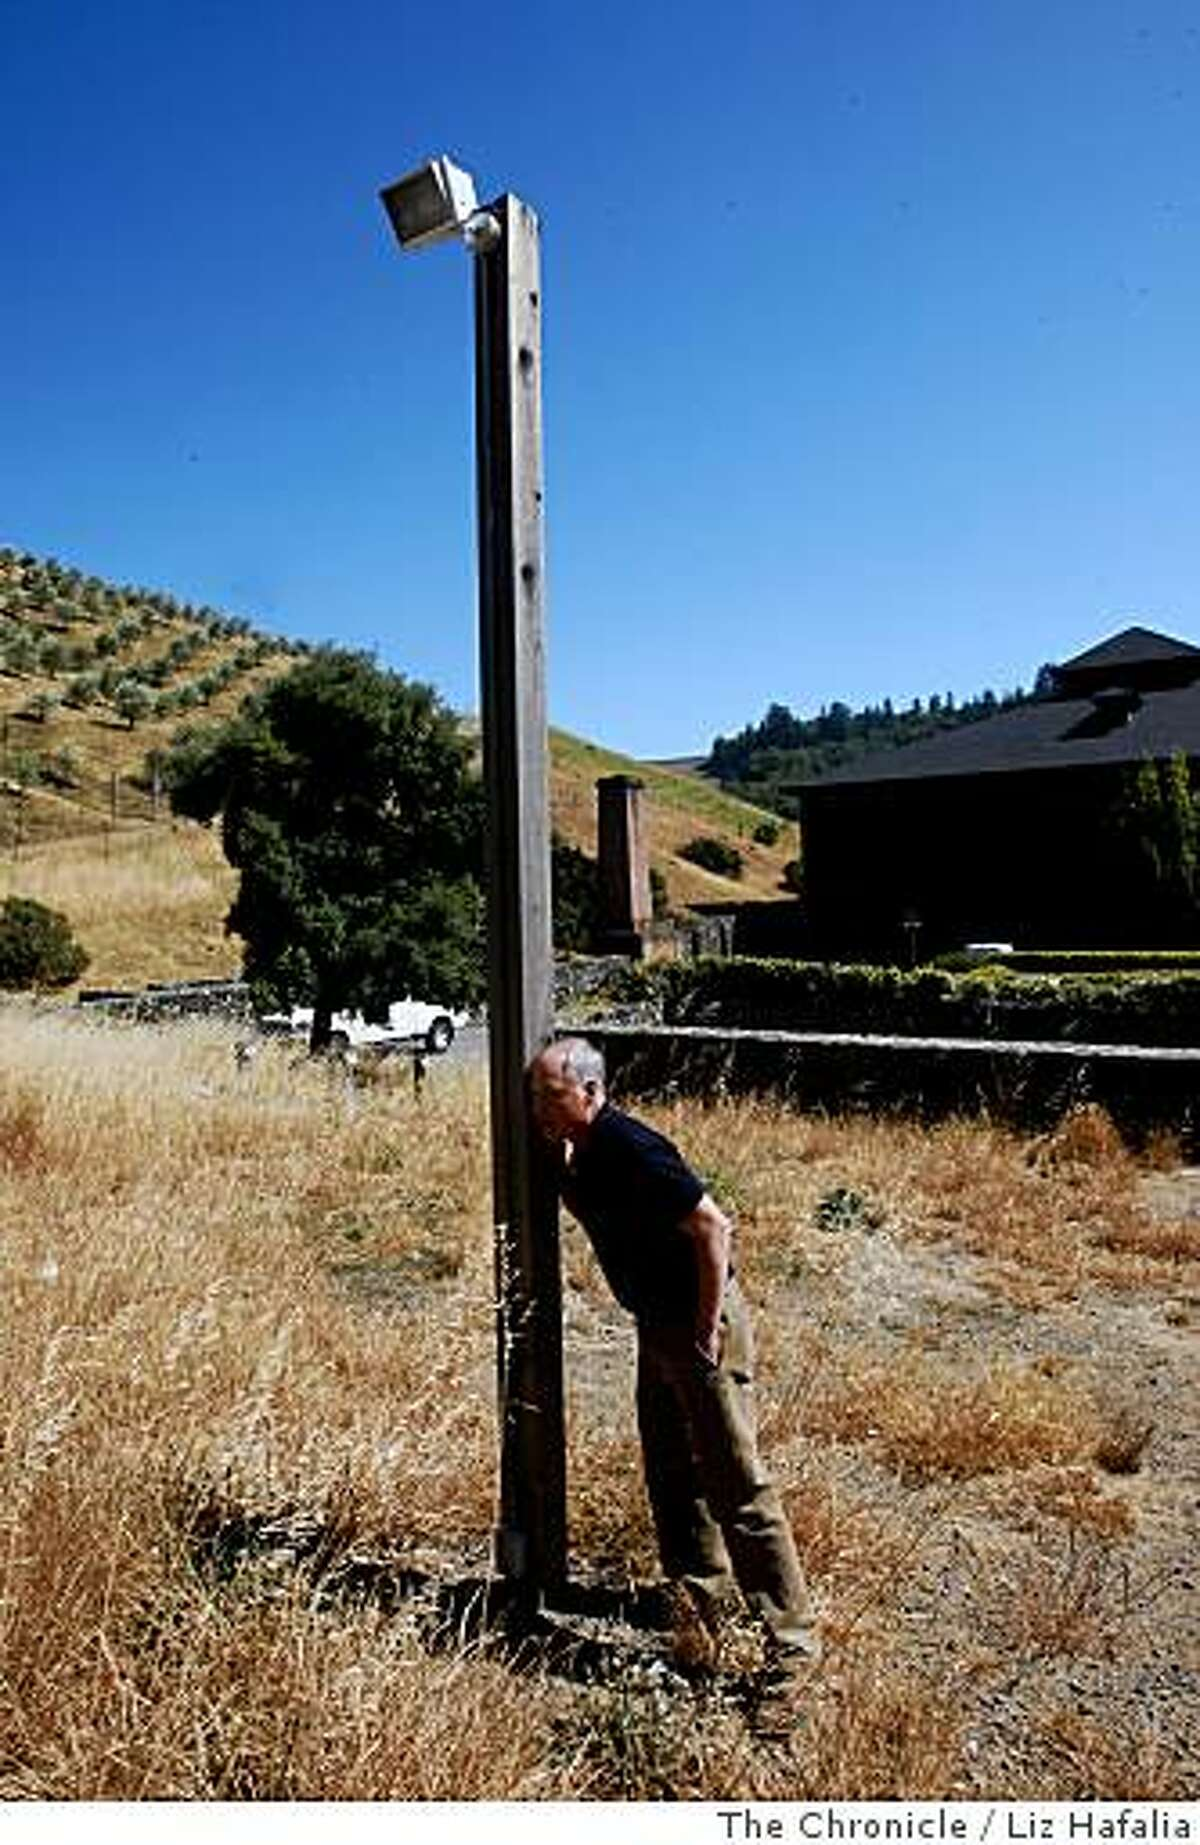 Sound designer Ben Burtt listens to find out if he can hear the buzzing from a parking lot lamp post he recorded at Skywalker Ranch in Marin on June 16, 2008. He used the sound for the skull characters in the new